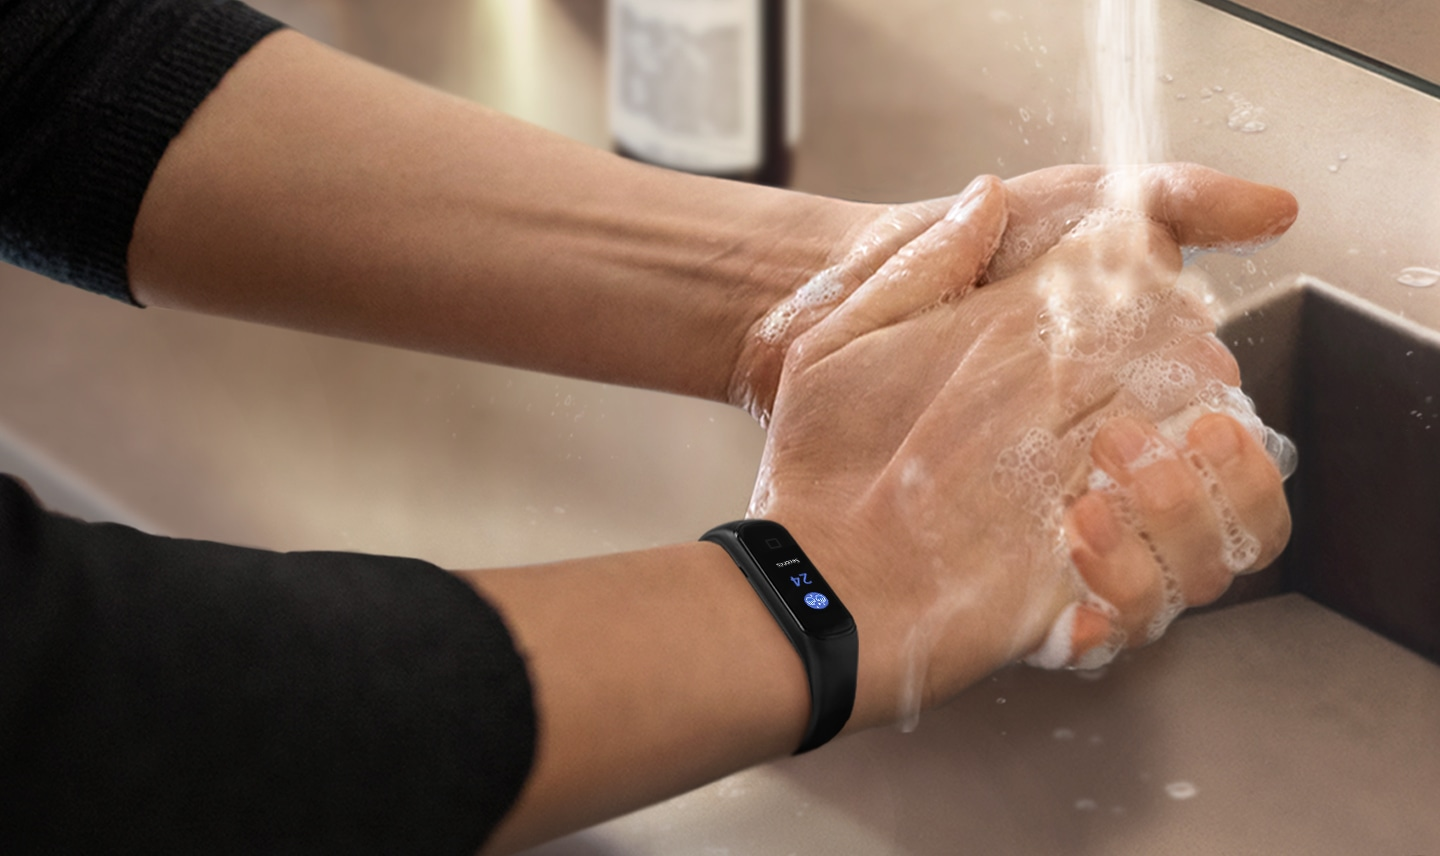 A friendly reminder to wash your hands